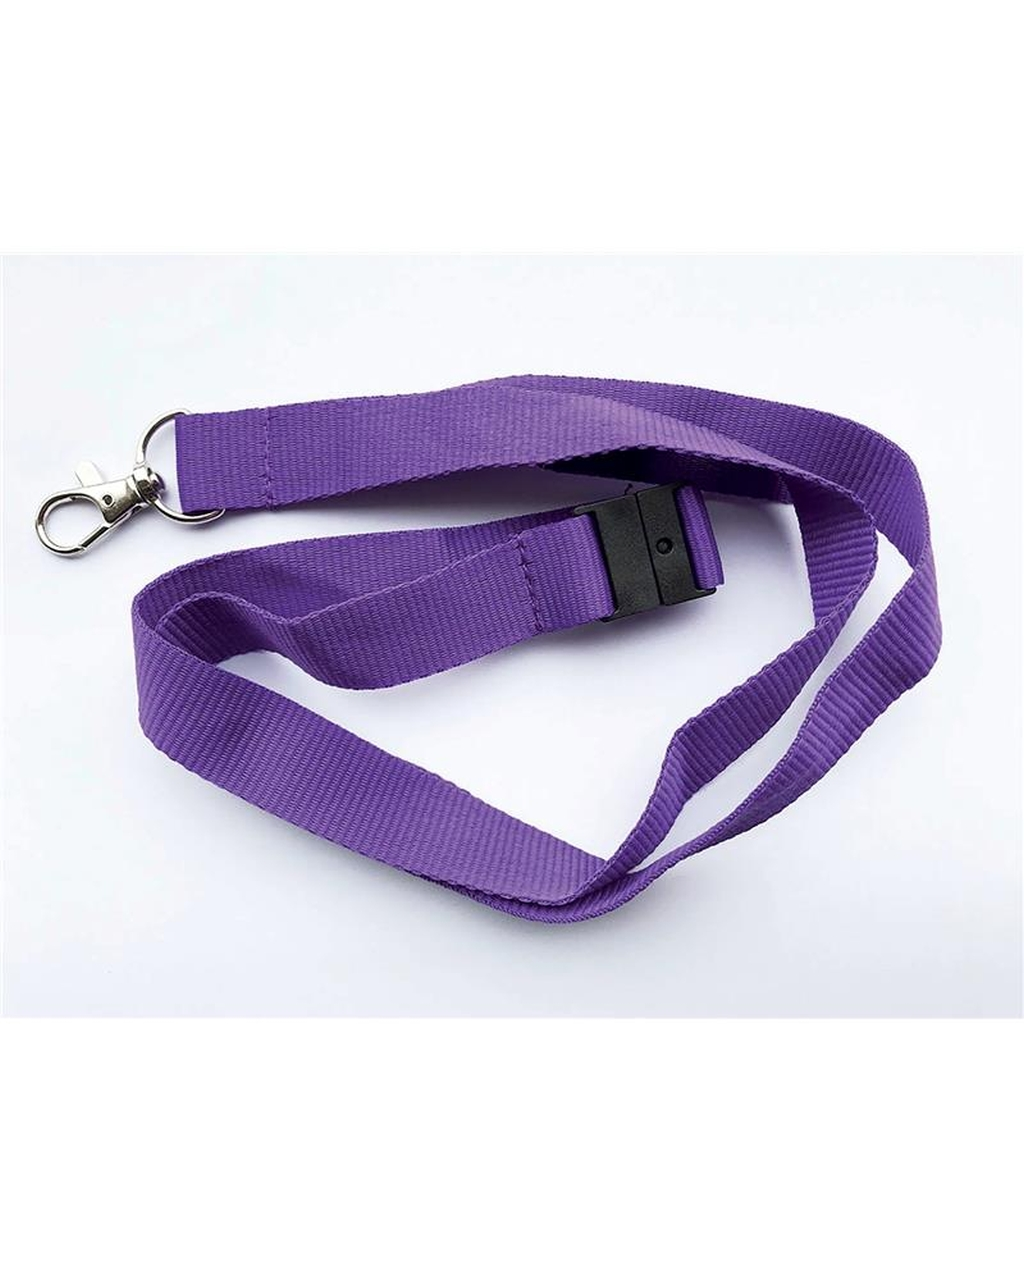 20Mm Lanyards Plain Purplepack Of 10